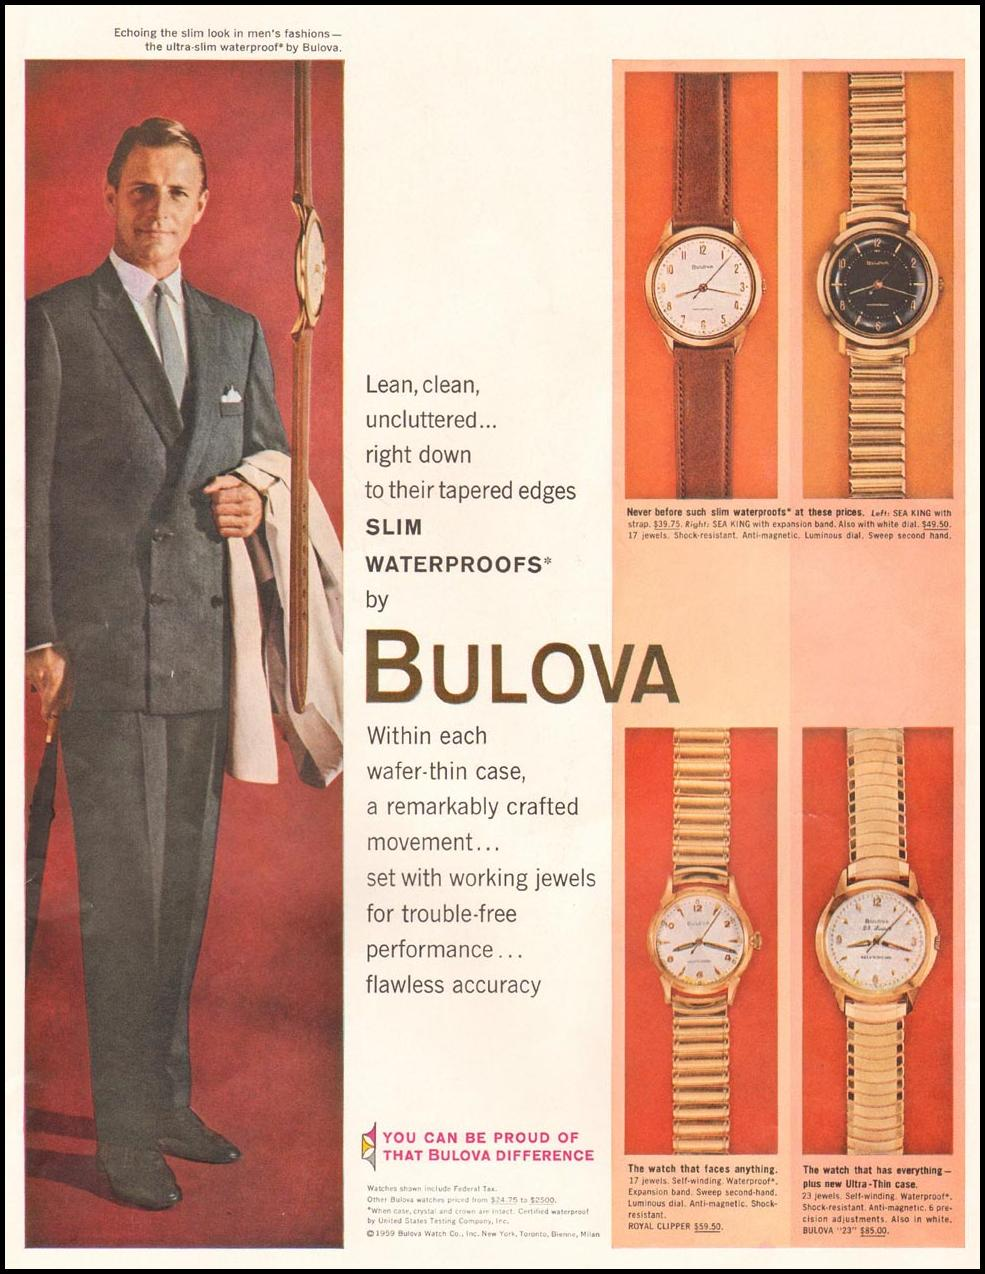 BULOVA WRIST WATCHES LIFE 10/05/1959 INSIDE FRONT